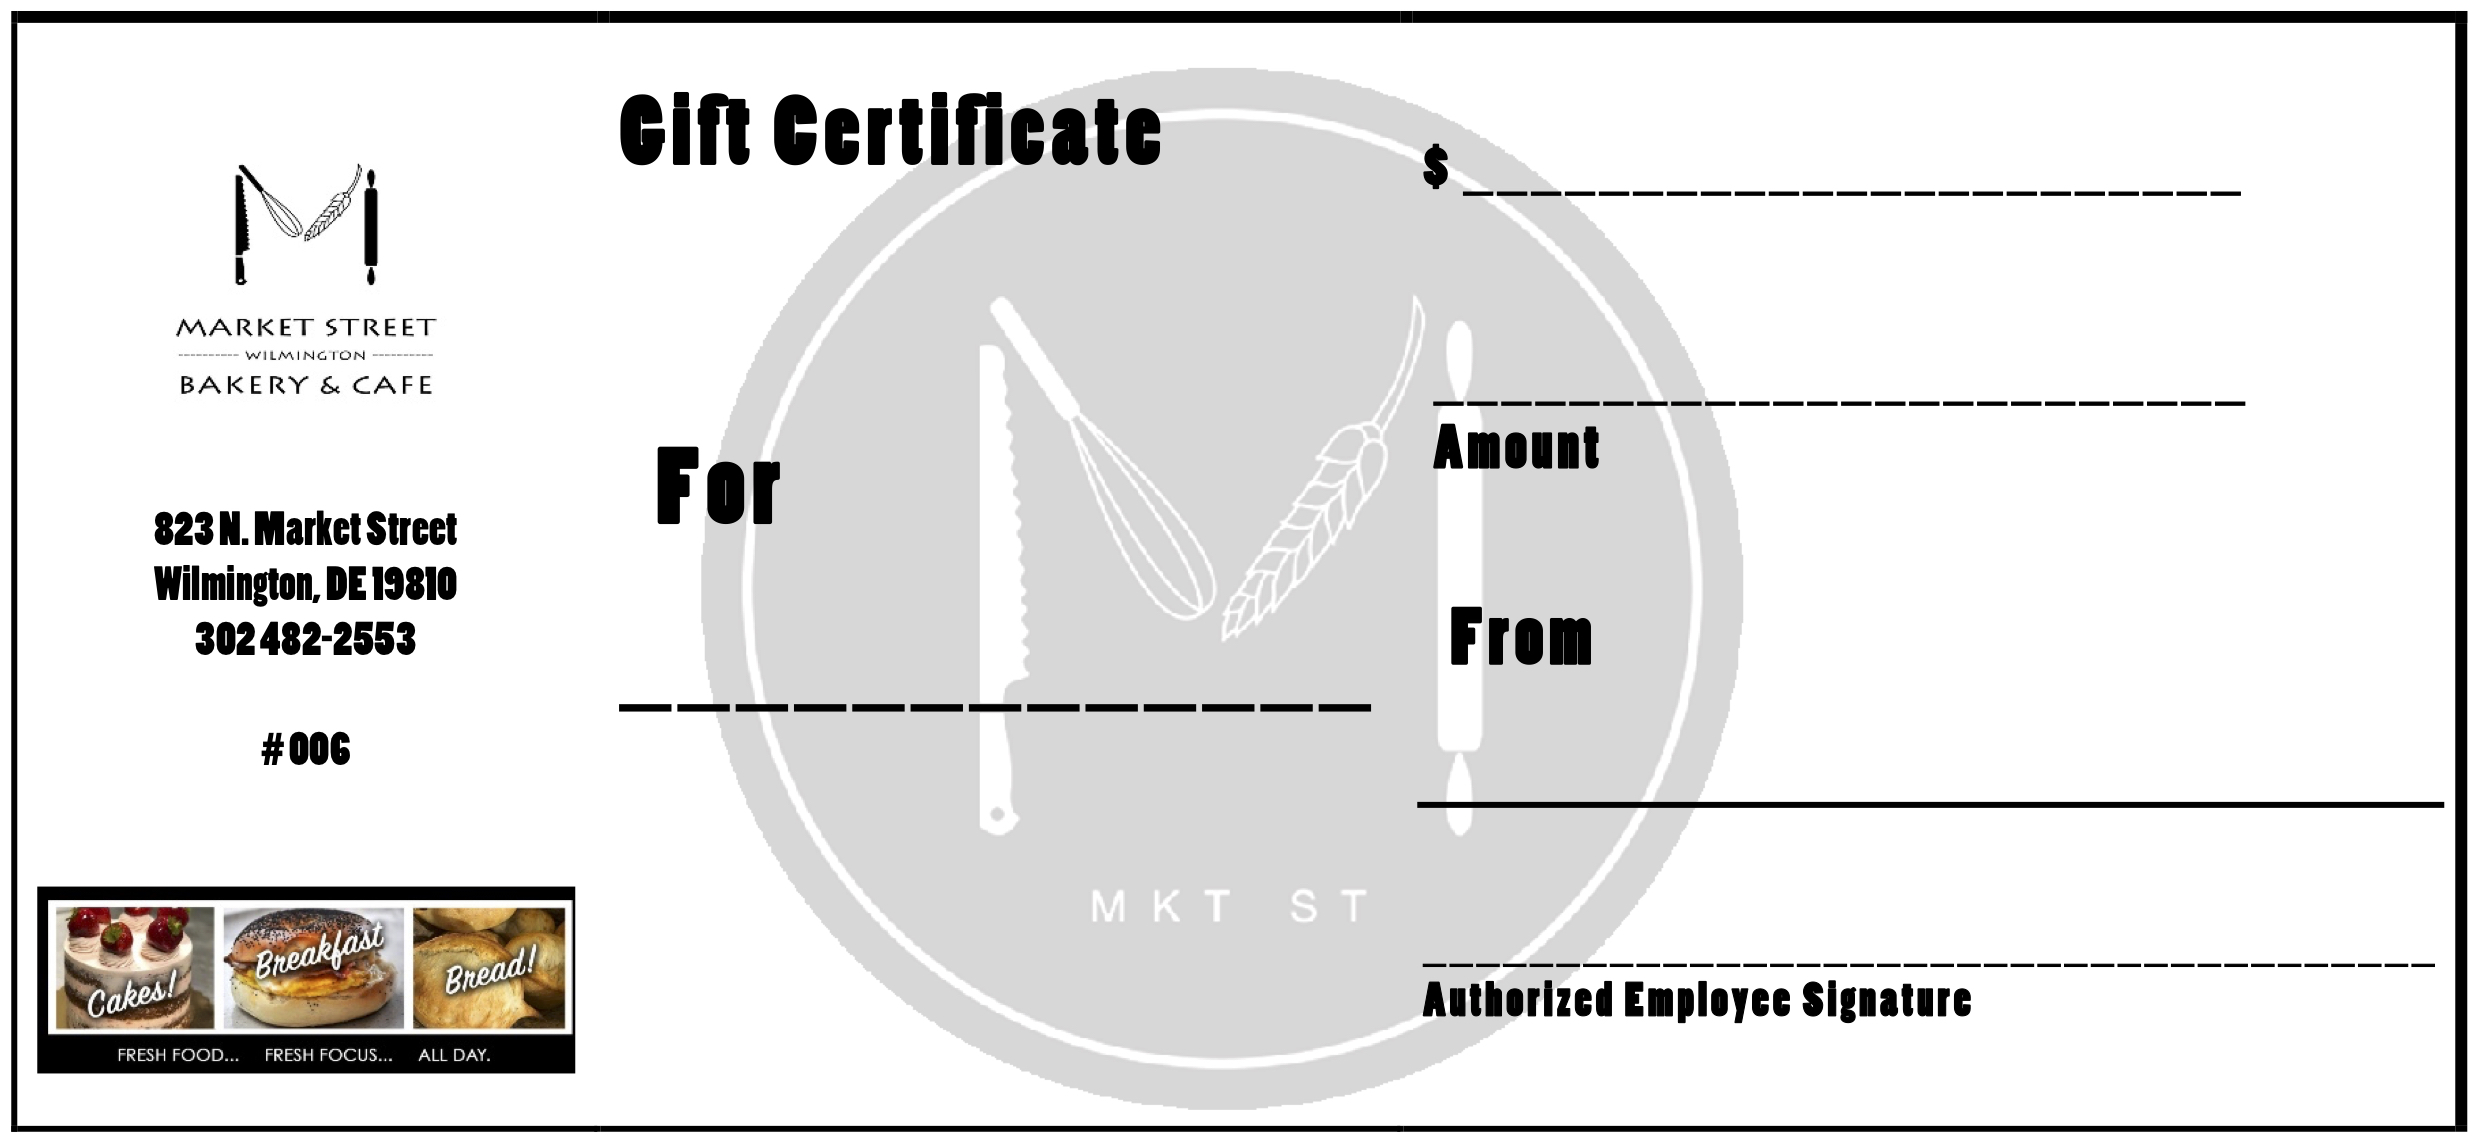 GIFT CERTIFICATES - NOW AVAILABLE FOR IN STORE PURCHASE!